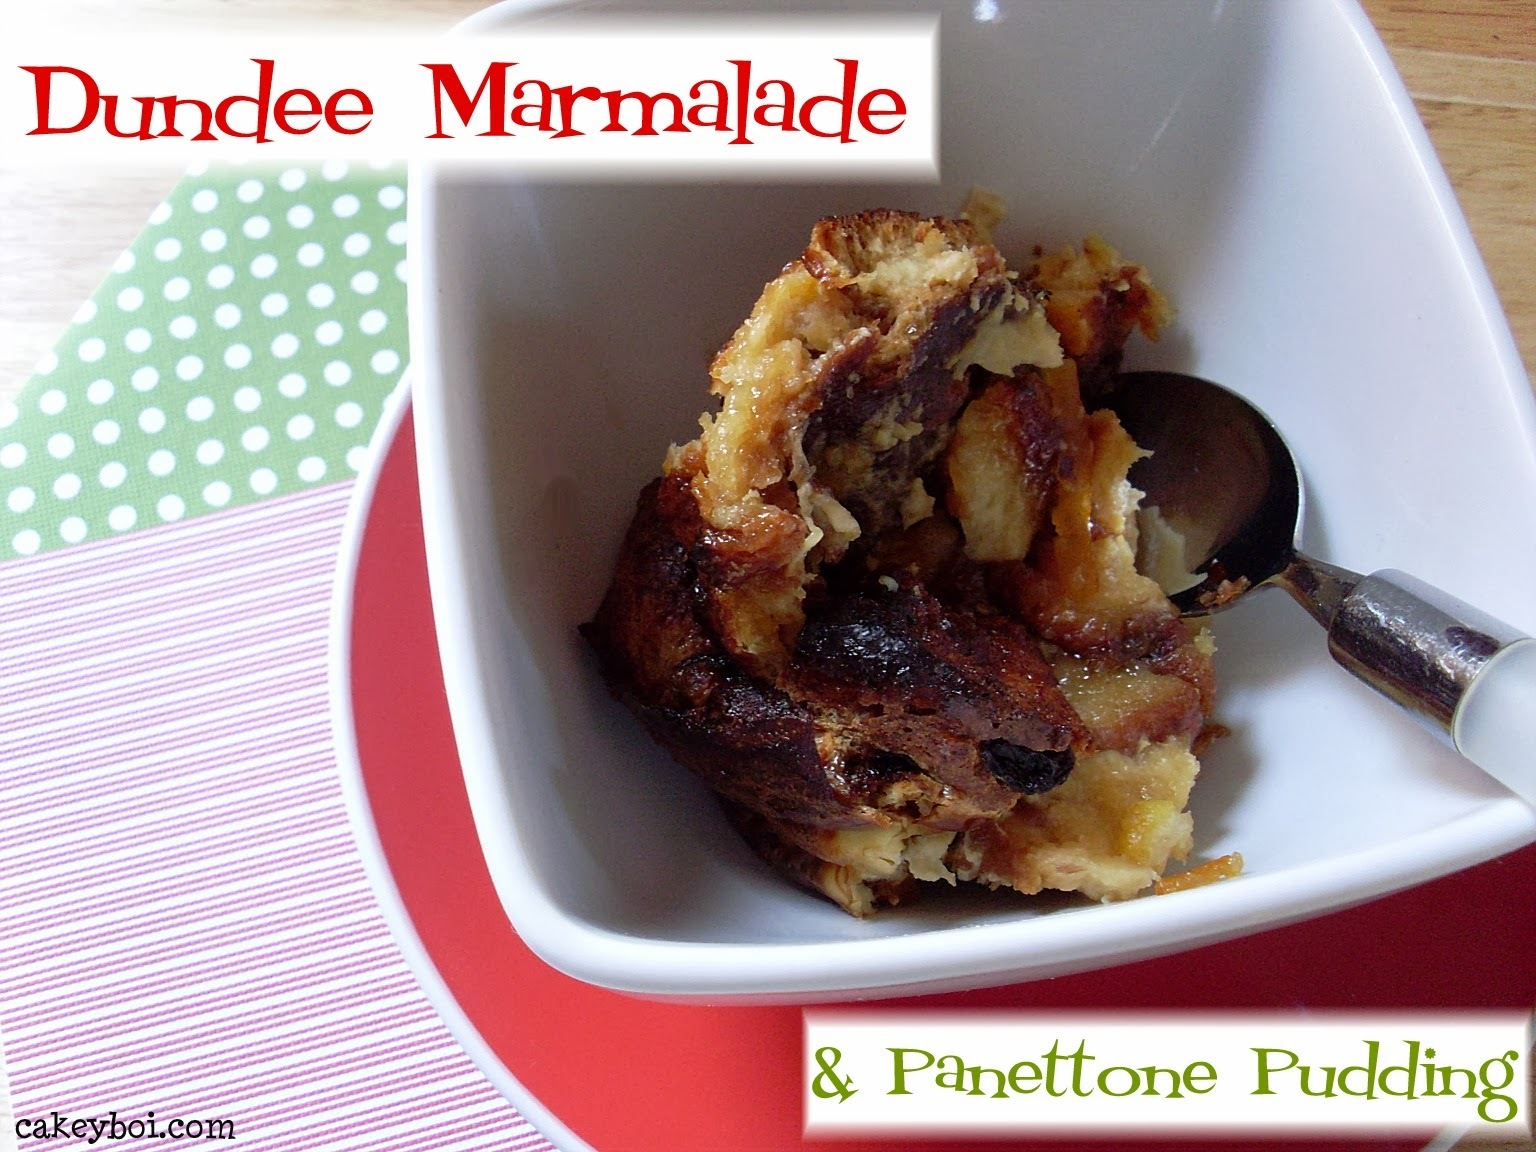 Dundee Marmalade and Panettone Pudding